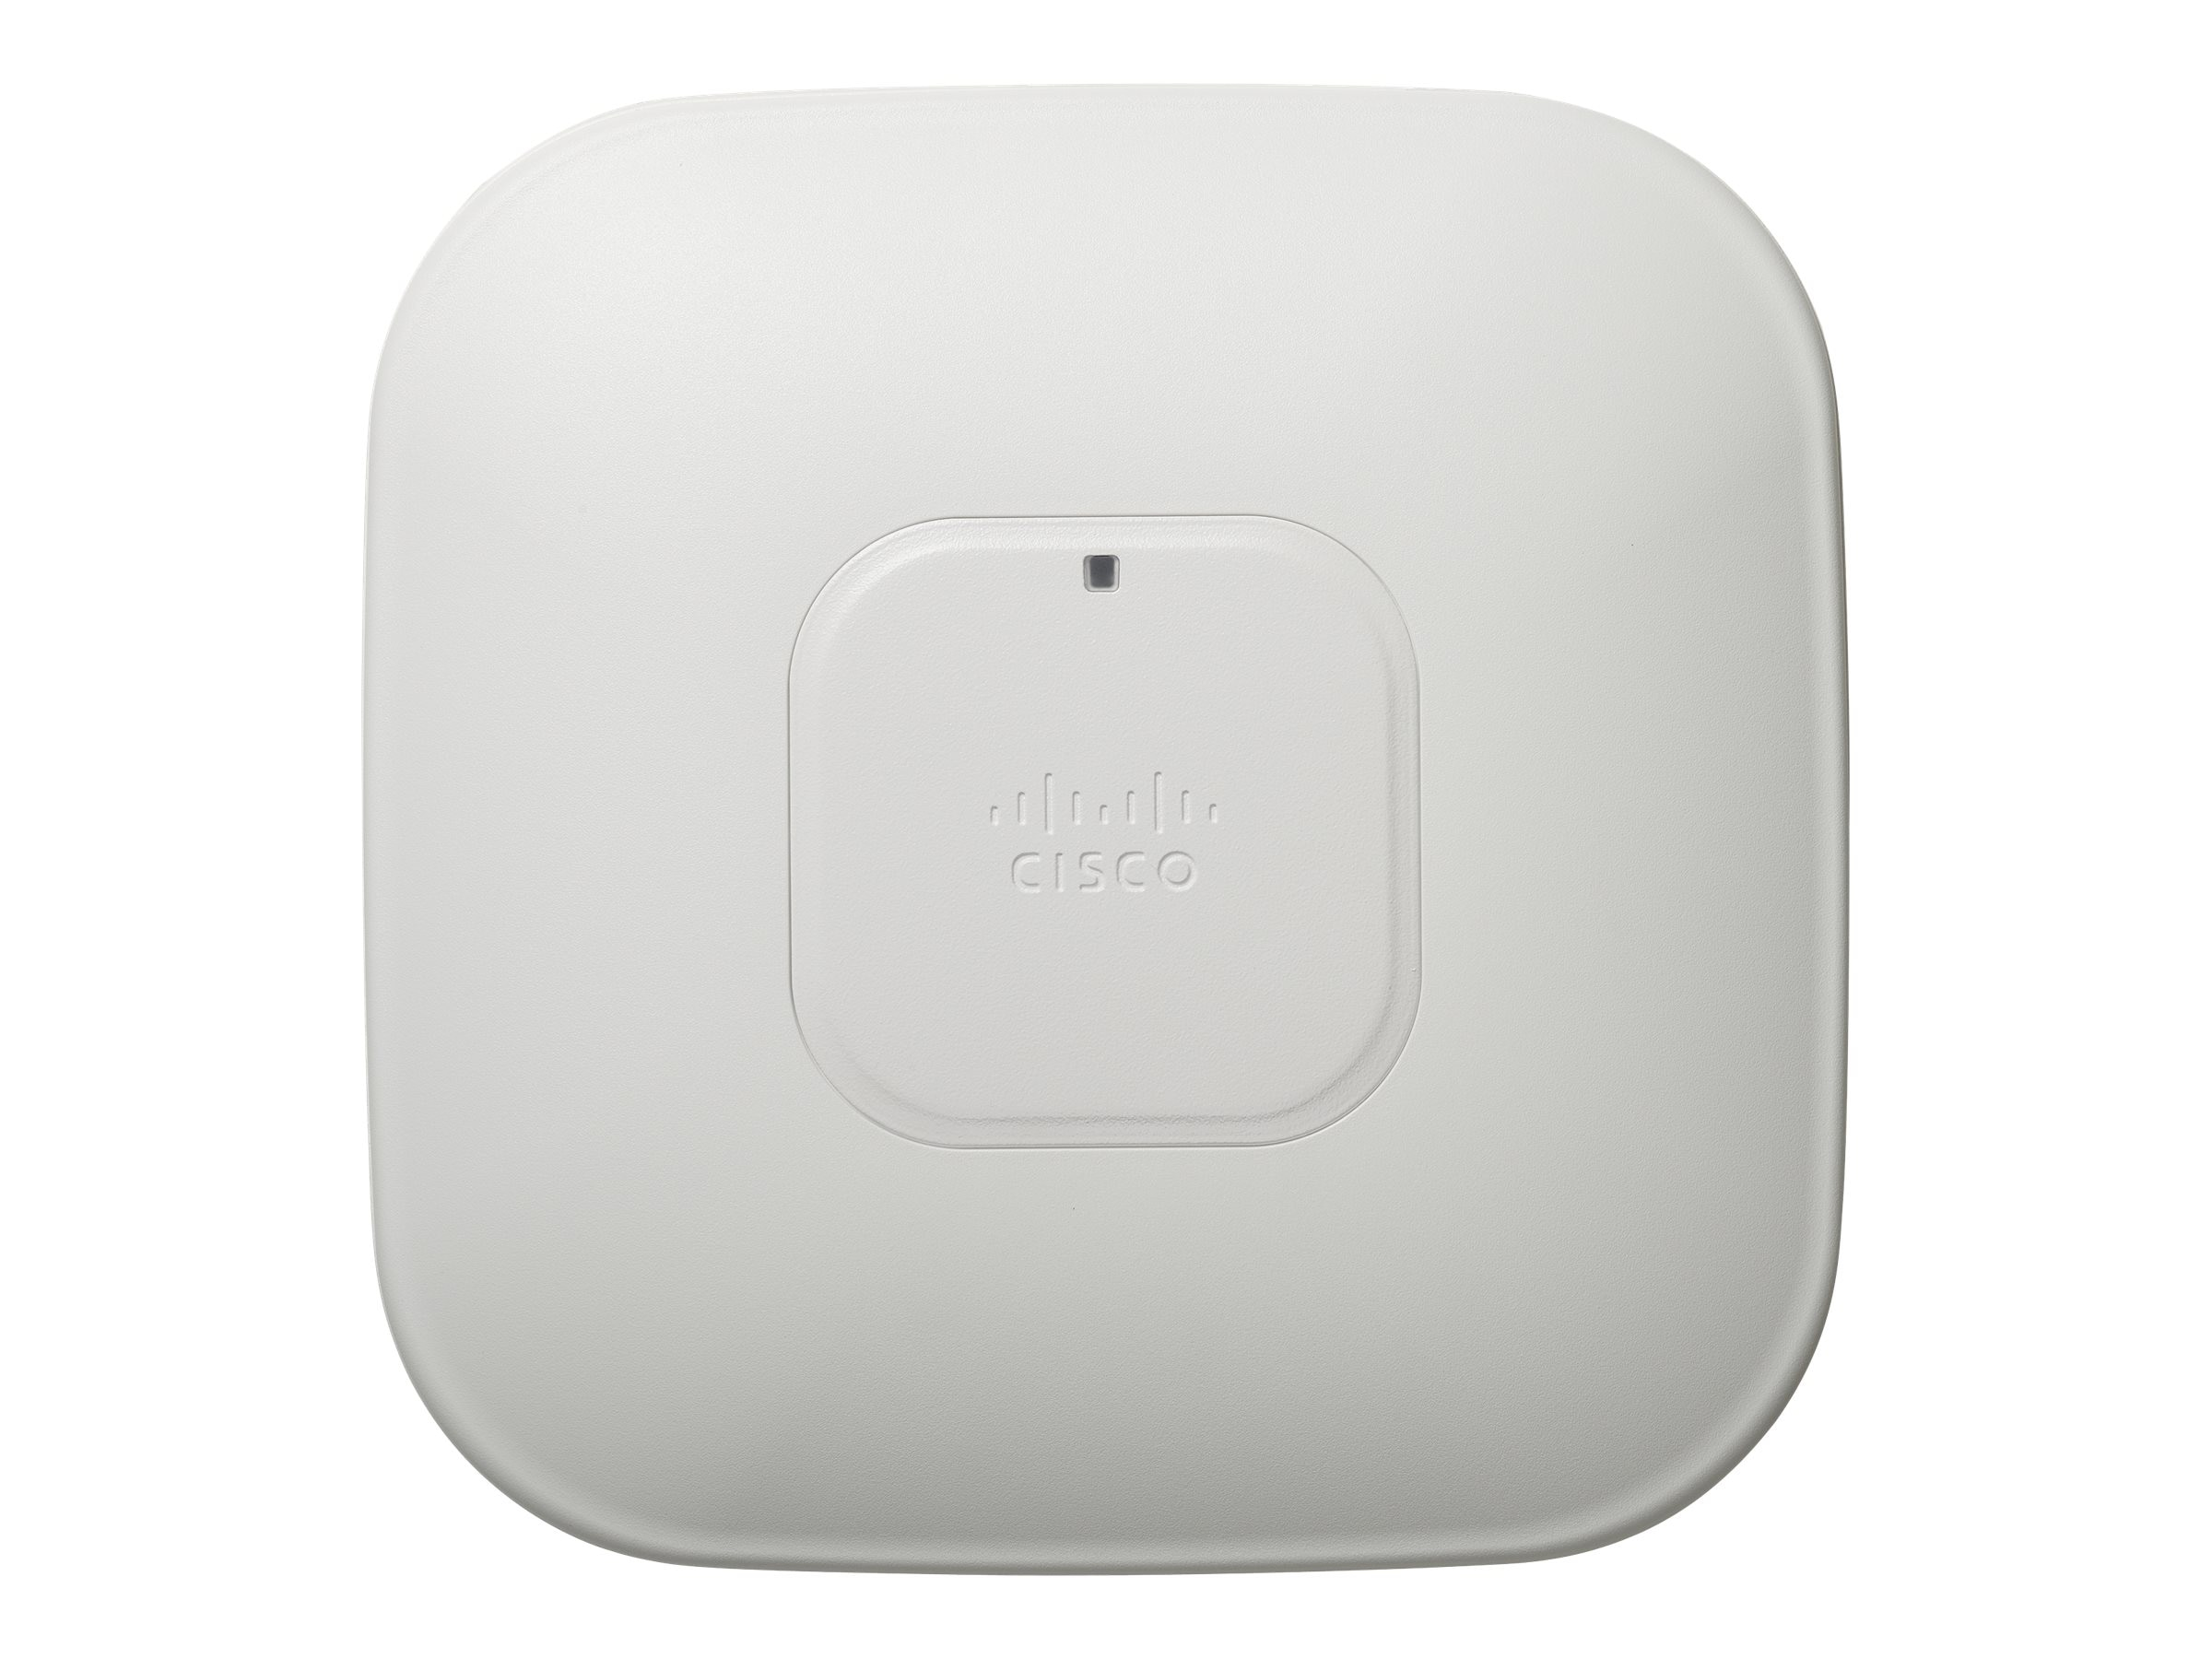 Cisco Aironet 3502i AP w CA, Int Antenna, A Domain, AIR-CAP3502I-A-K9, 11590190, Wireless Access Points & Bridges